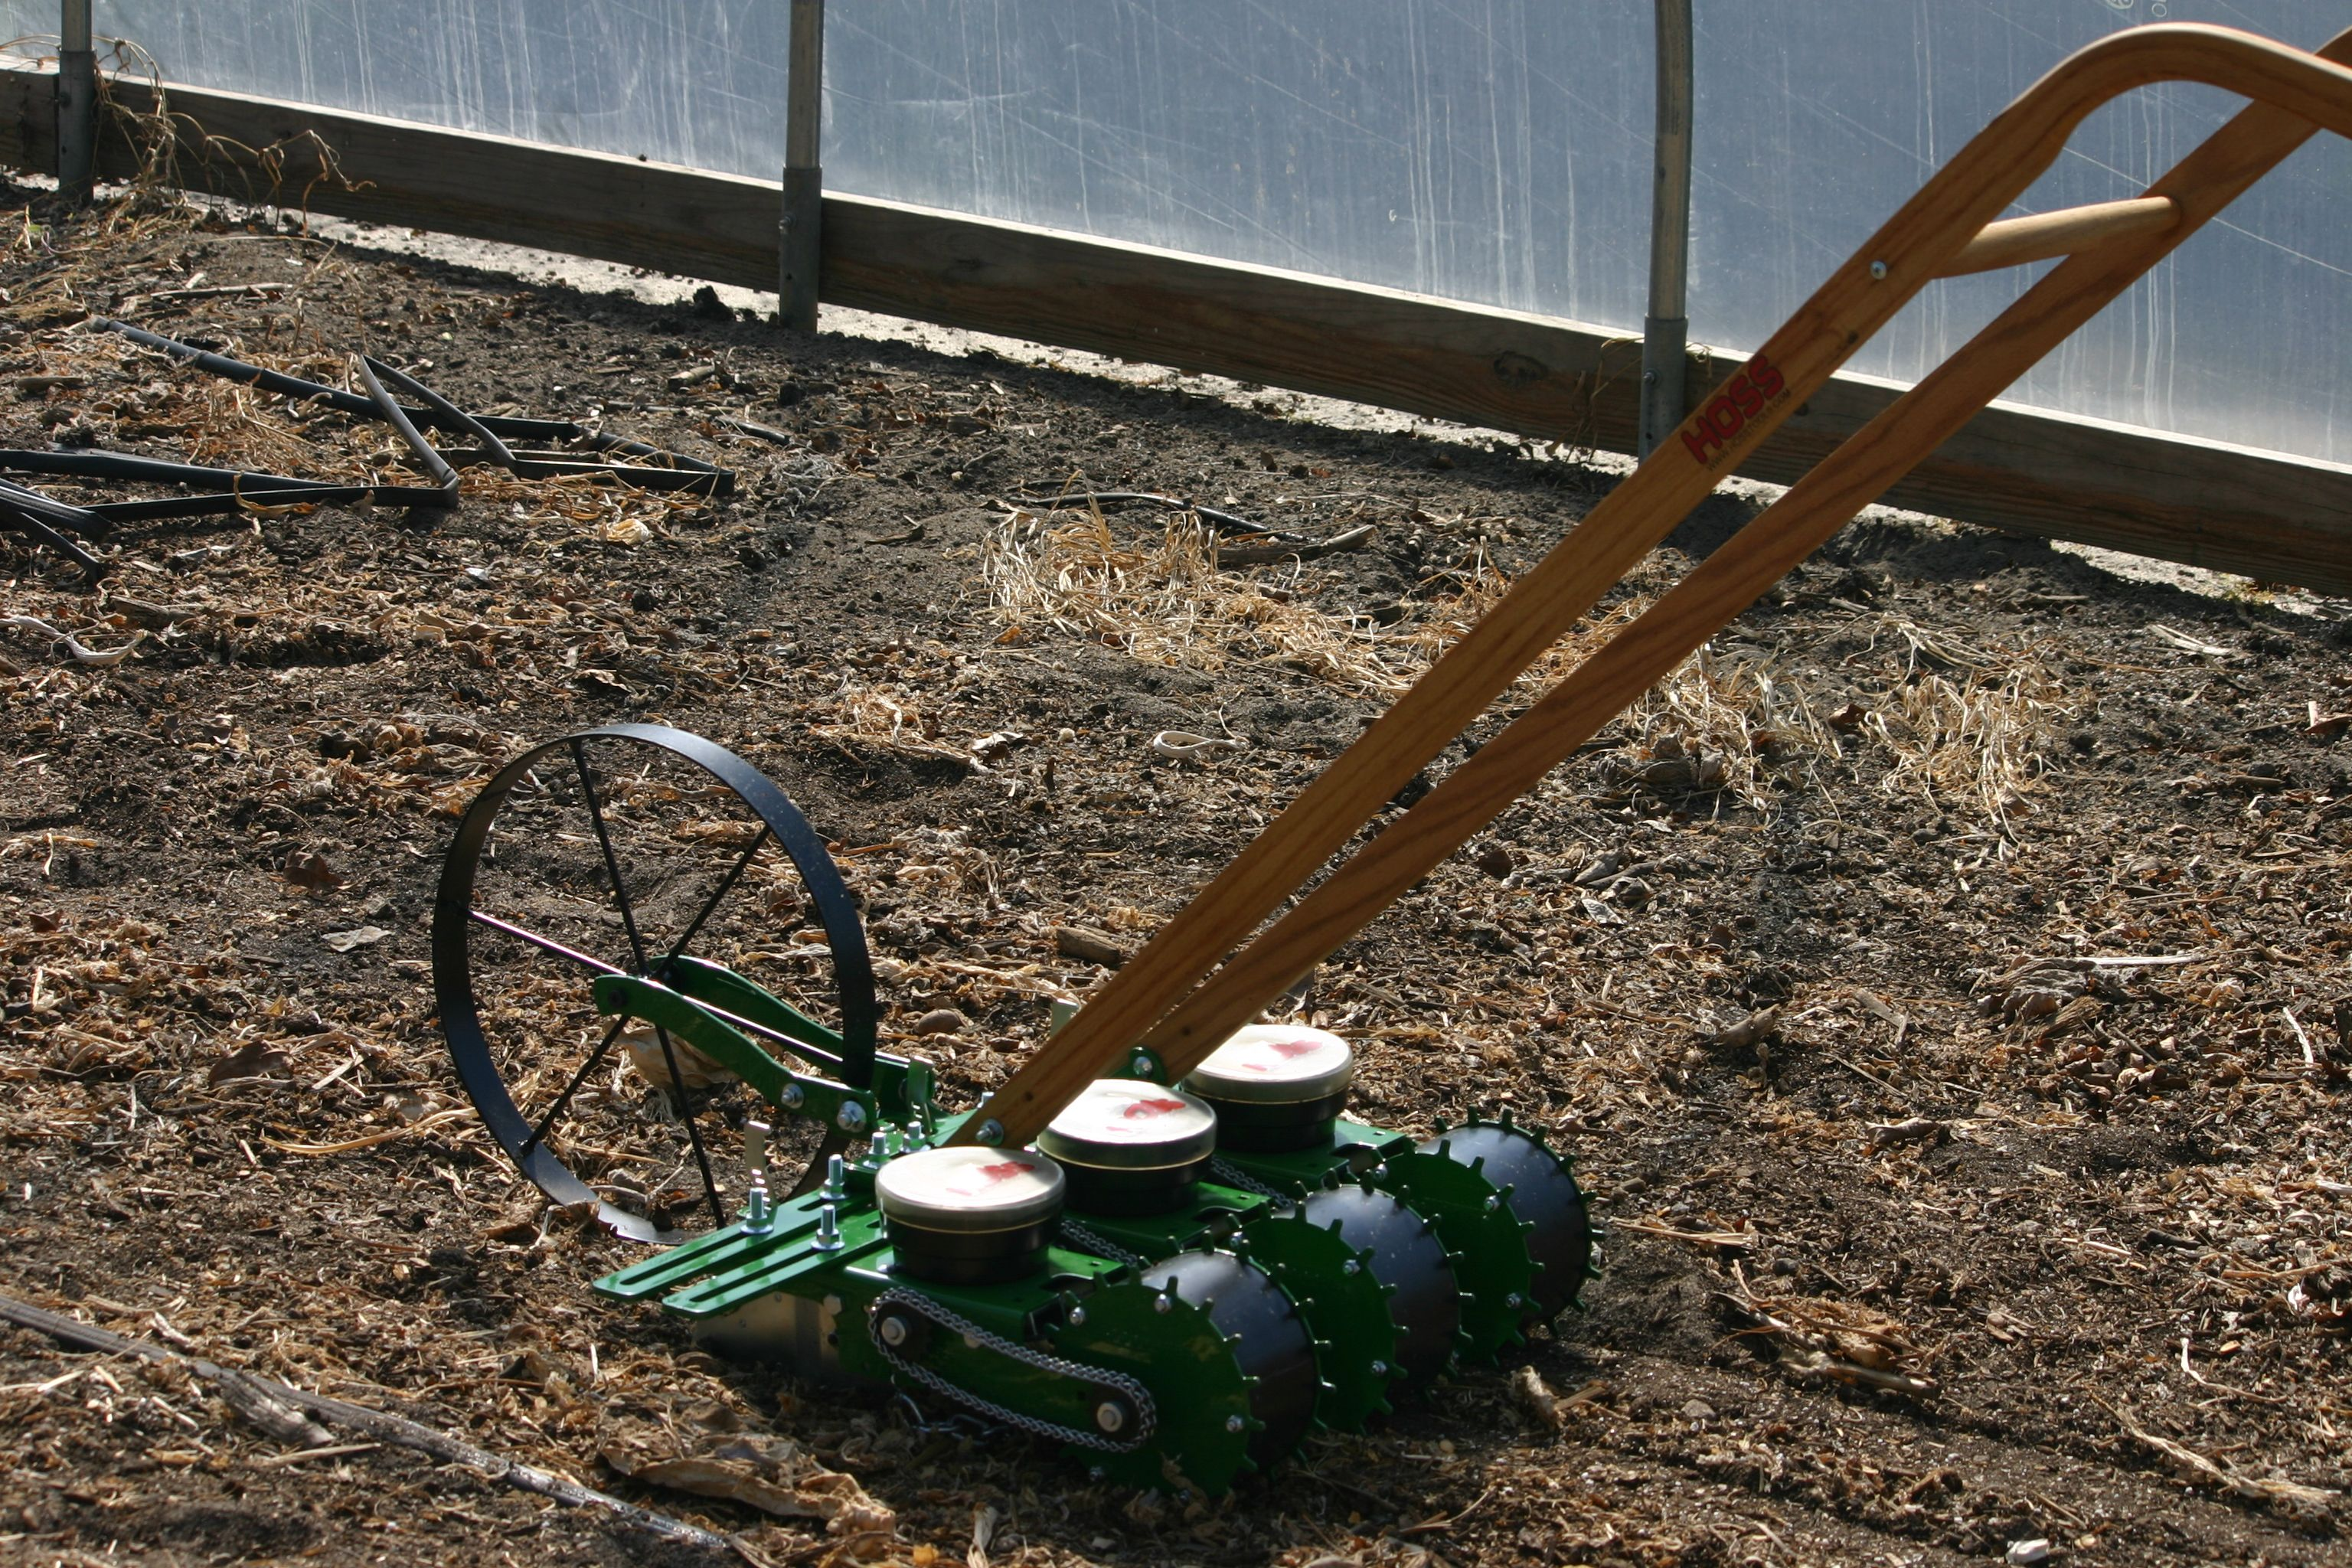 This incredible Wheel Hoe and Seeder setup allows you to plant ...